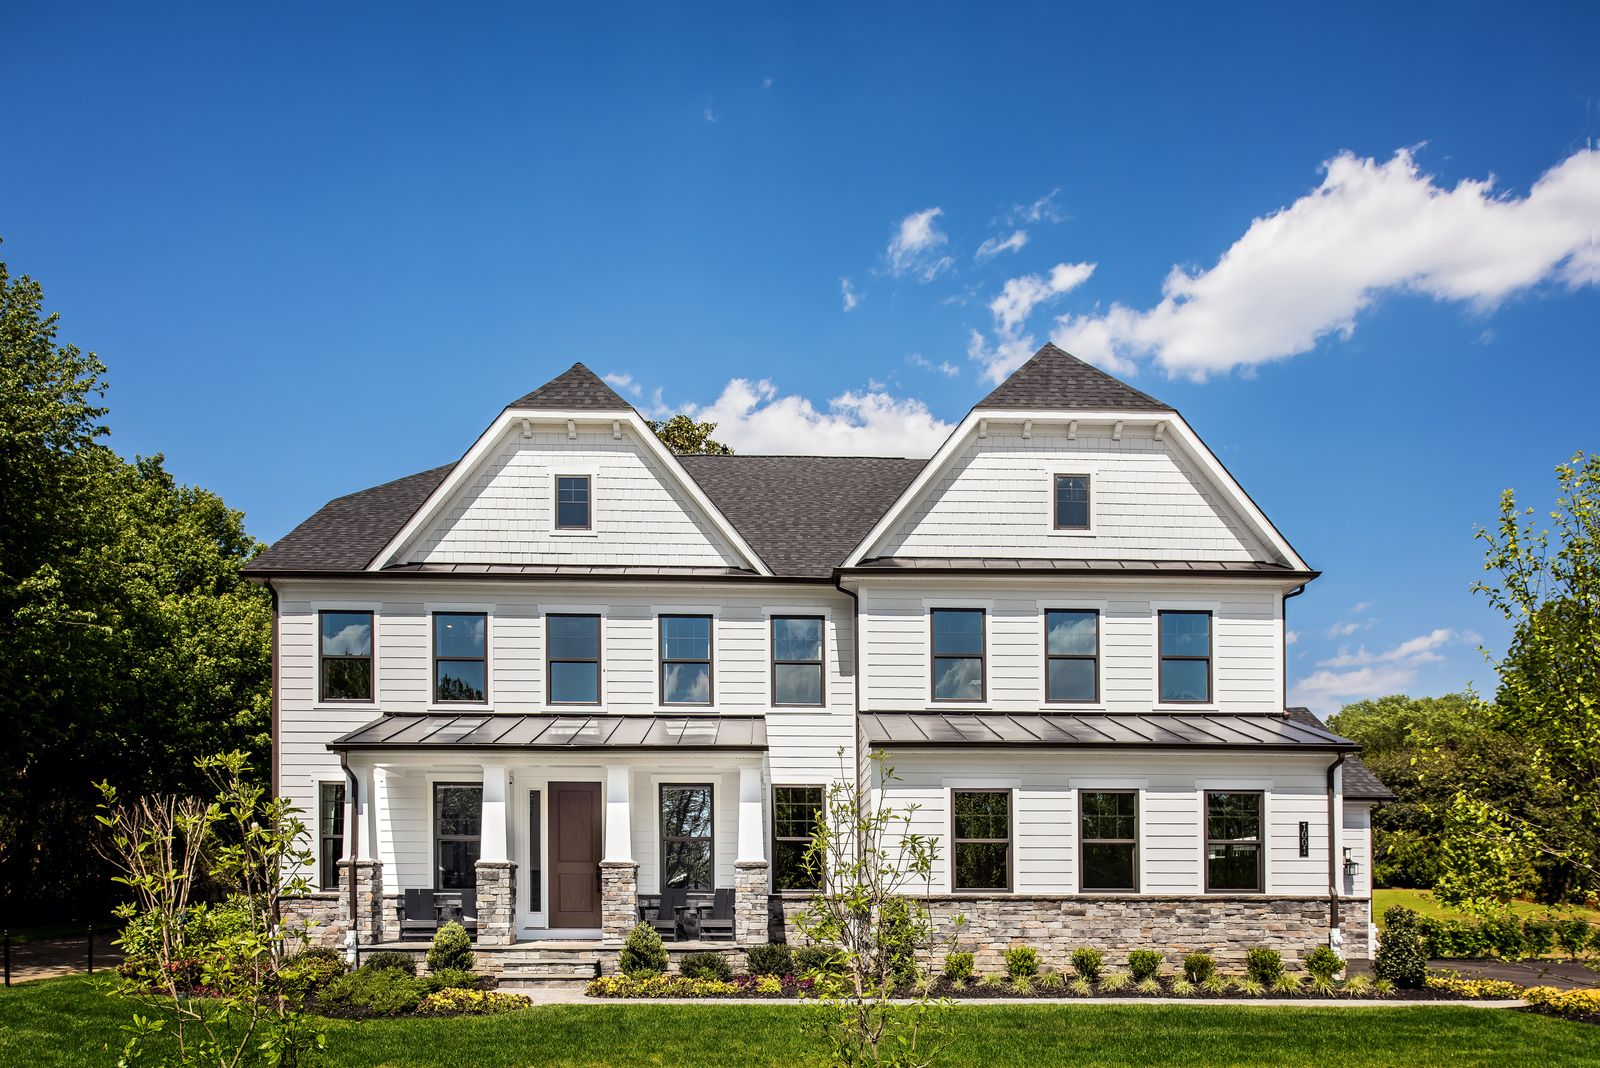 Estate Homes with Water Access:Welcome to Ivy Hill, our private enclave of just 13 estate homes in Severna Park. Sales are underway,schedule a visit today!